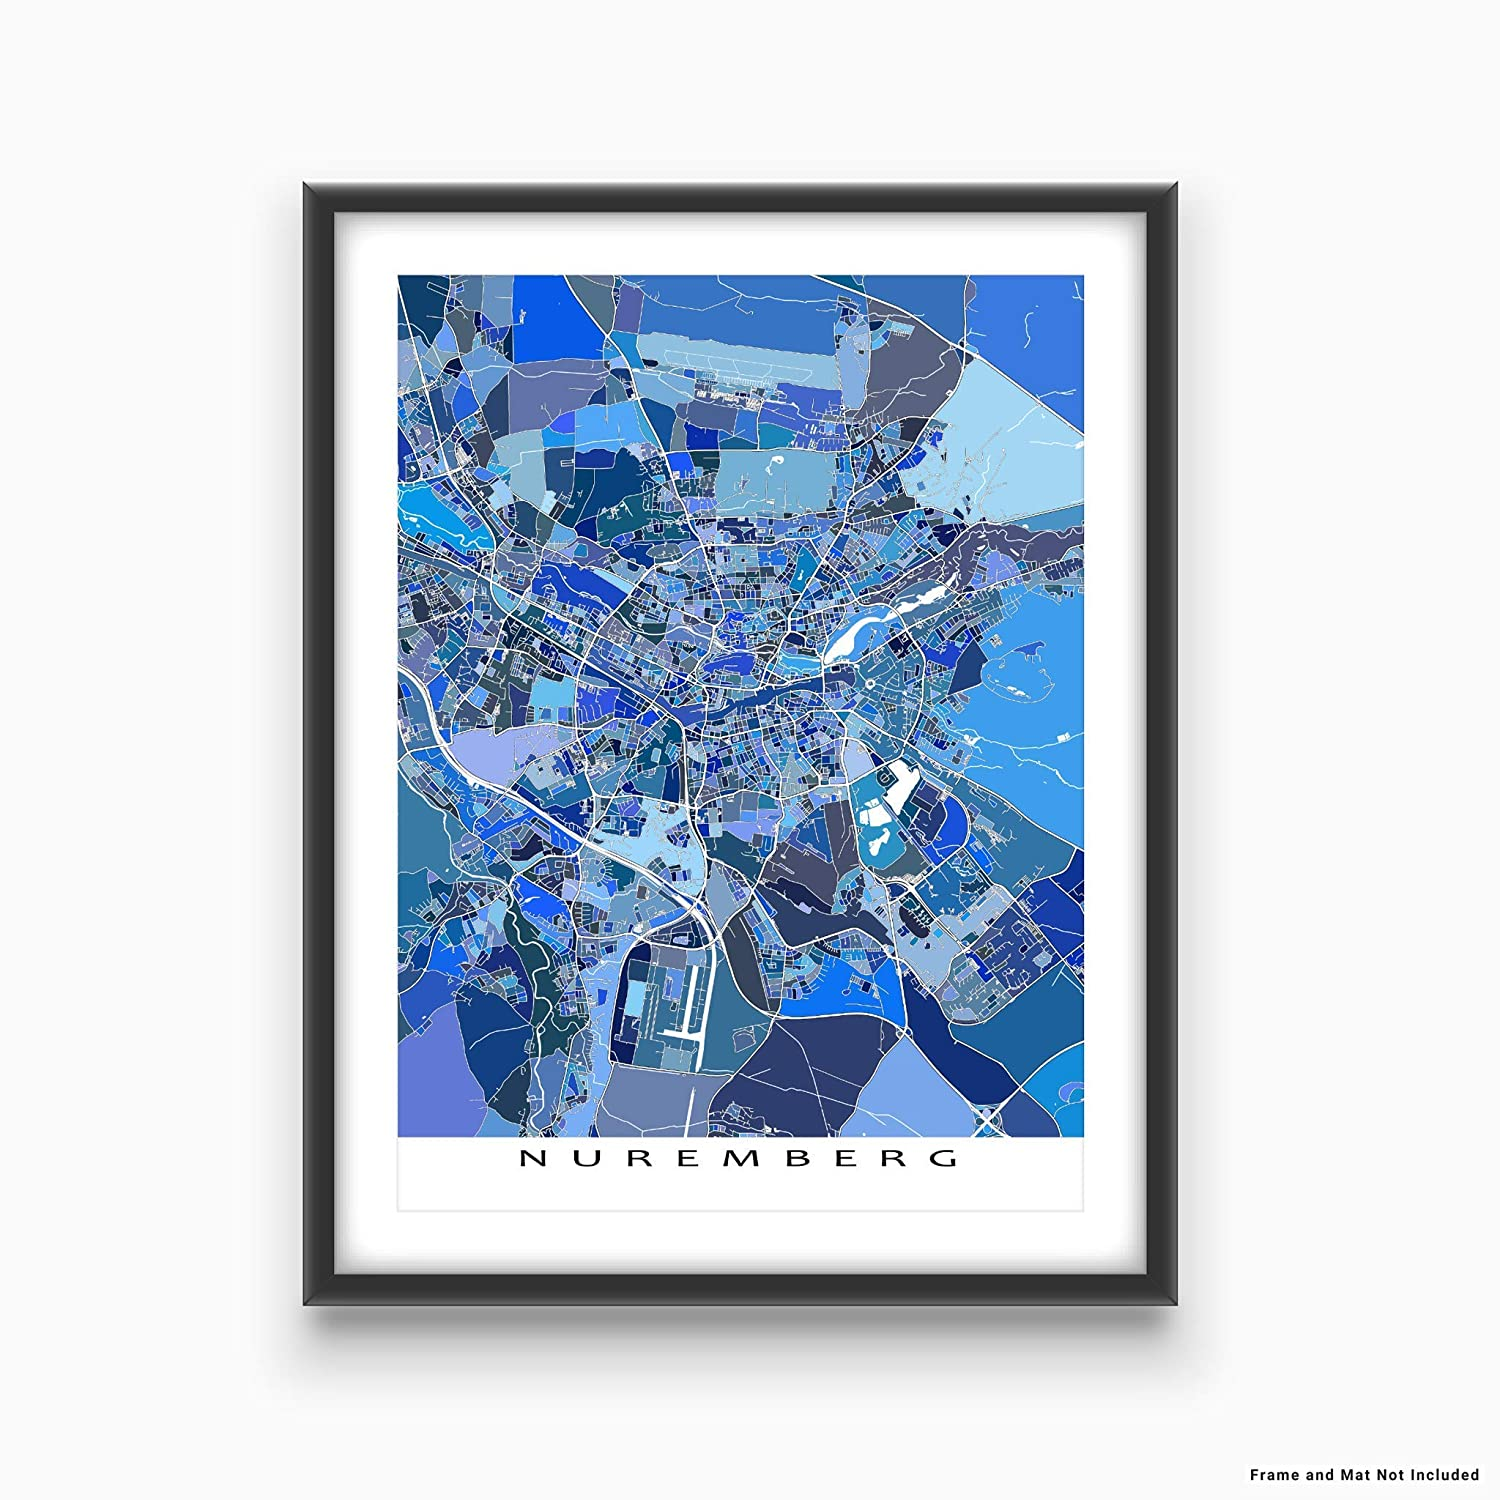 Nuremberg Map Of Germany.Amazon Com Nuremberg Map Print Germany Europe City Wall